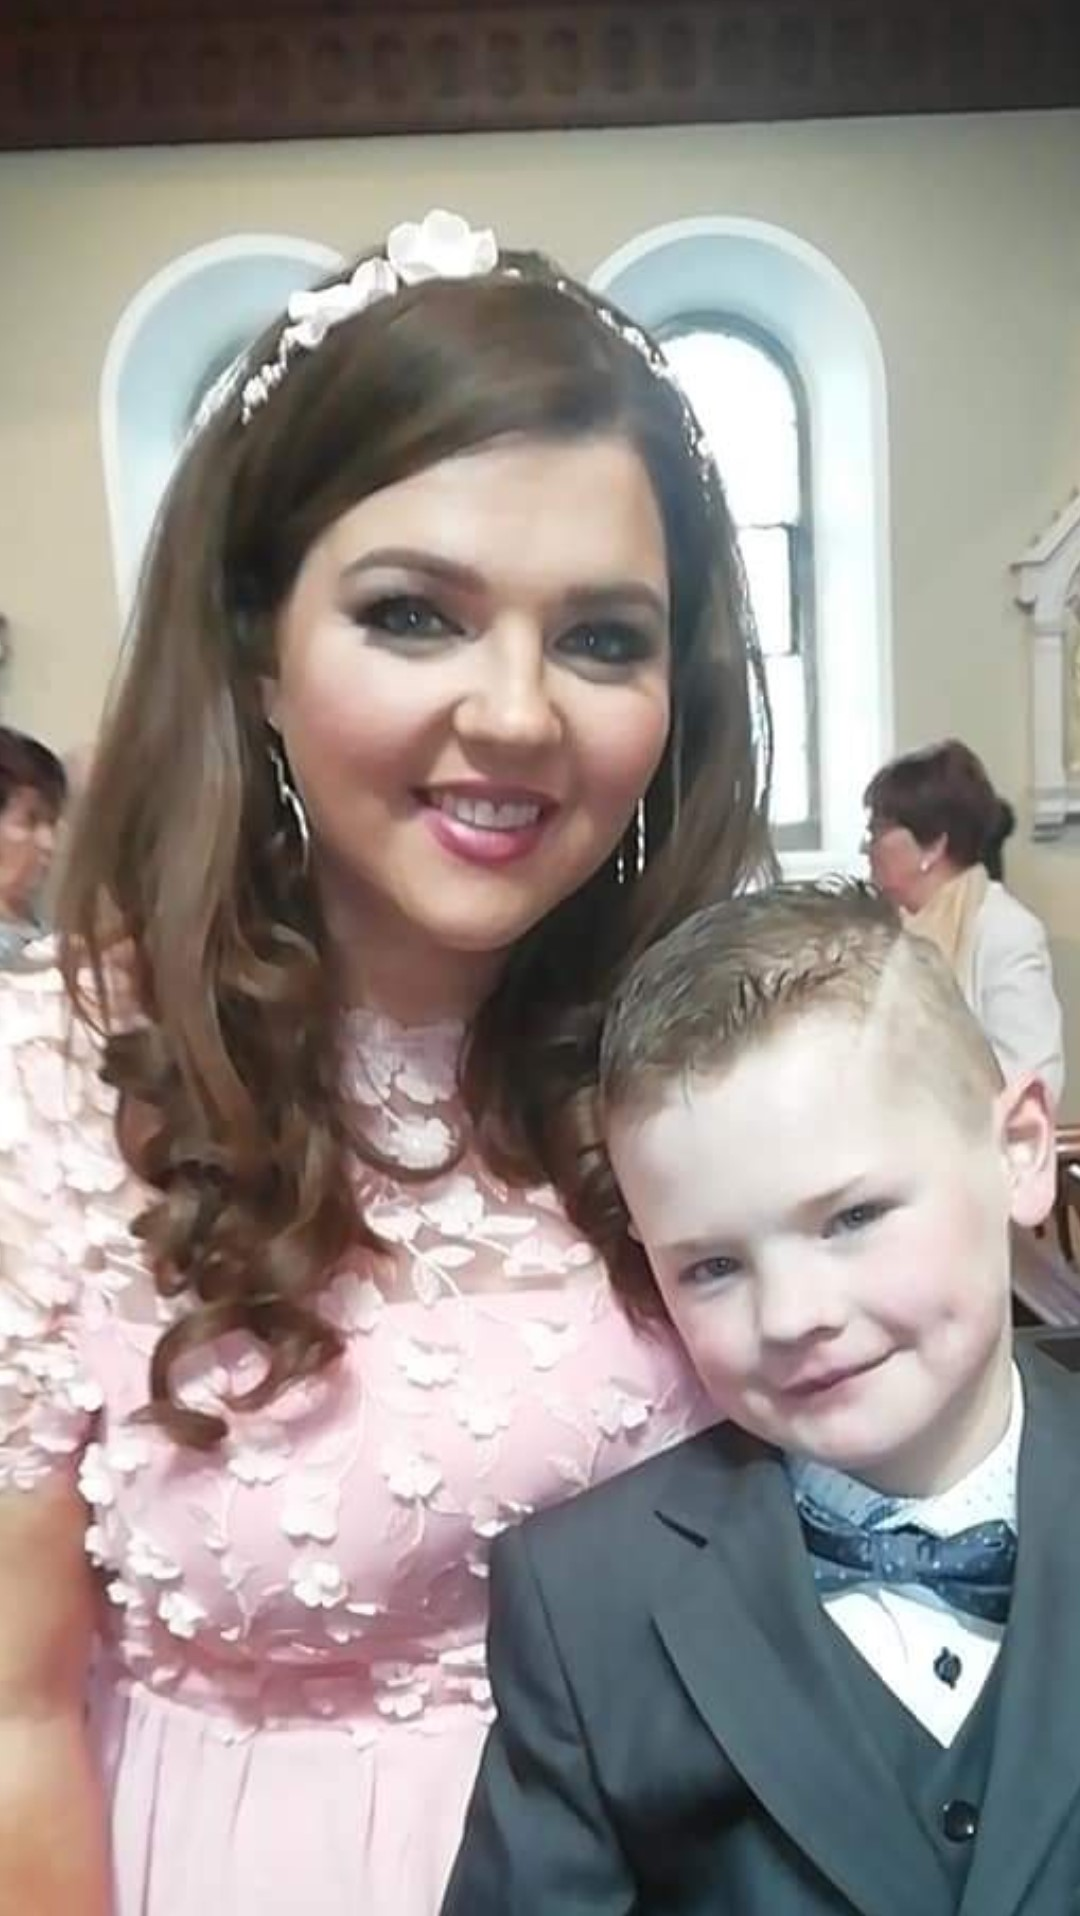 Newry mum inspired by son's heart condition to pursue cardiac physiology career | Newry Times news